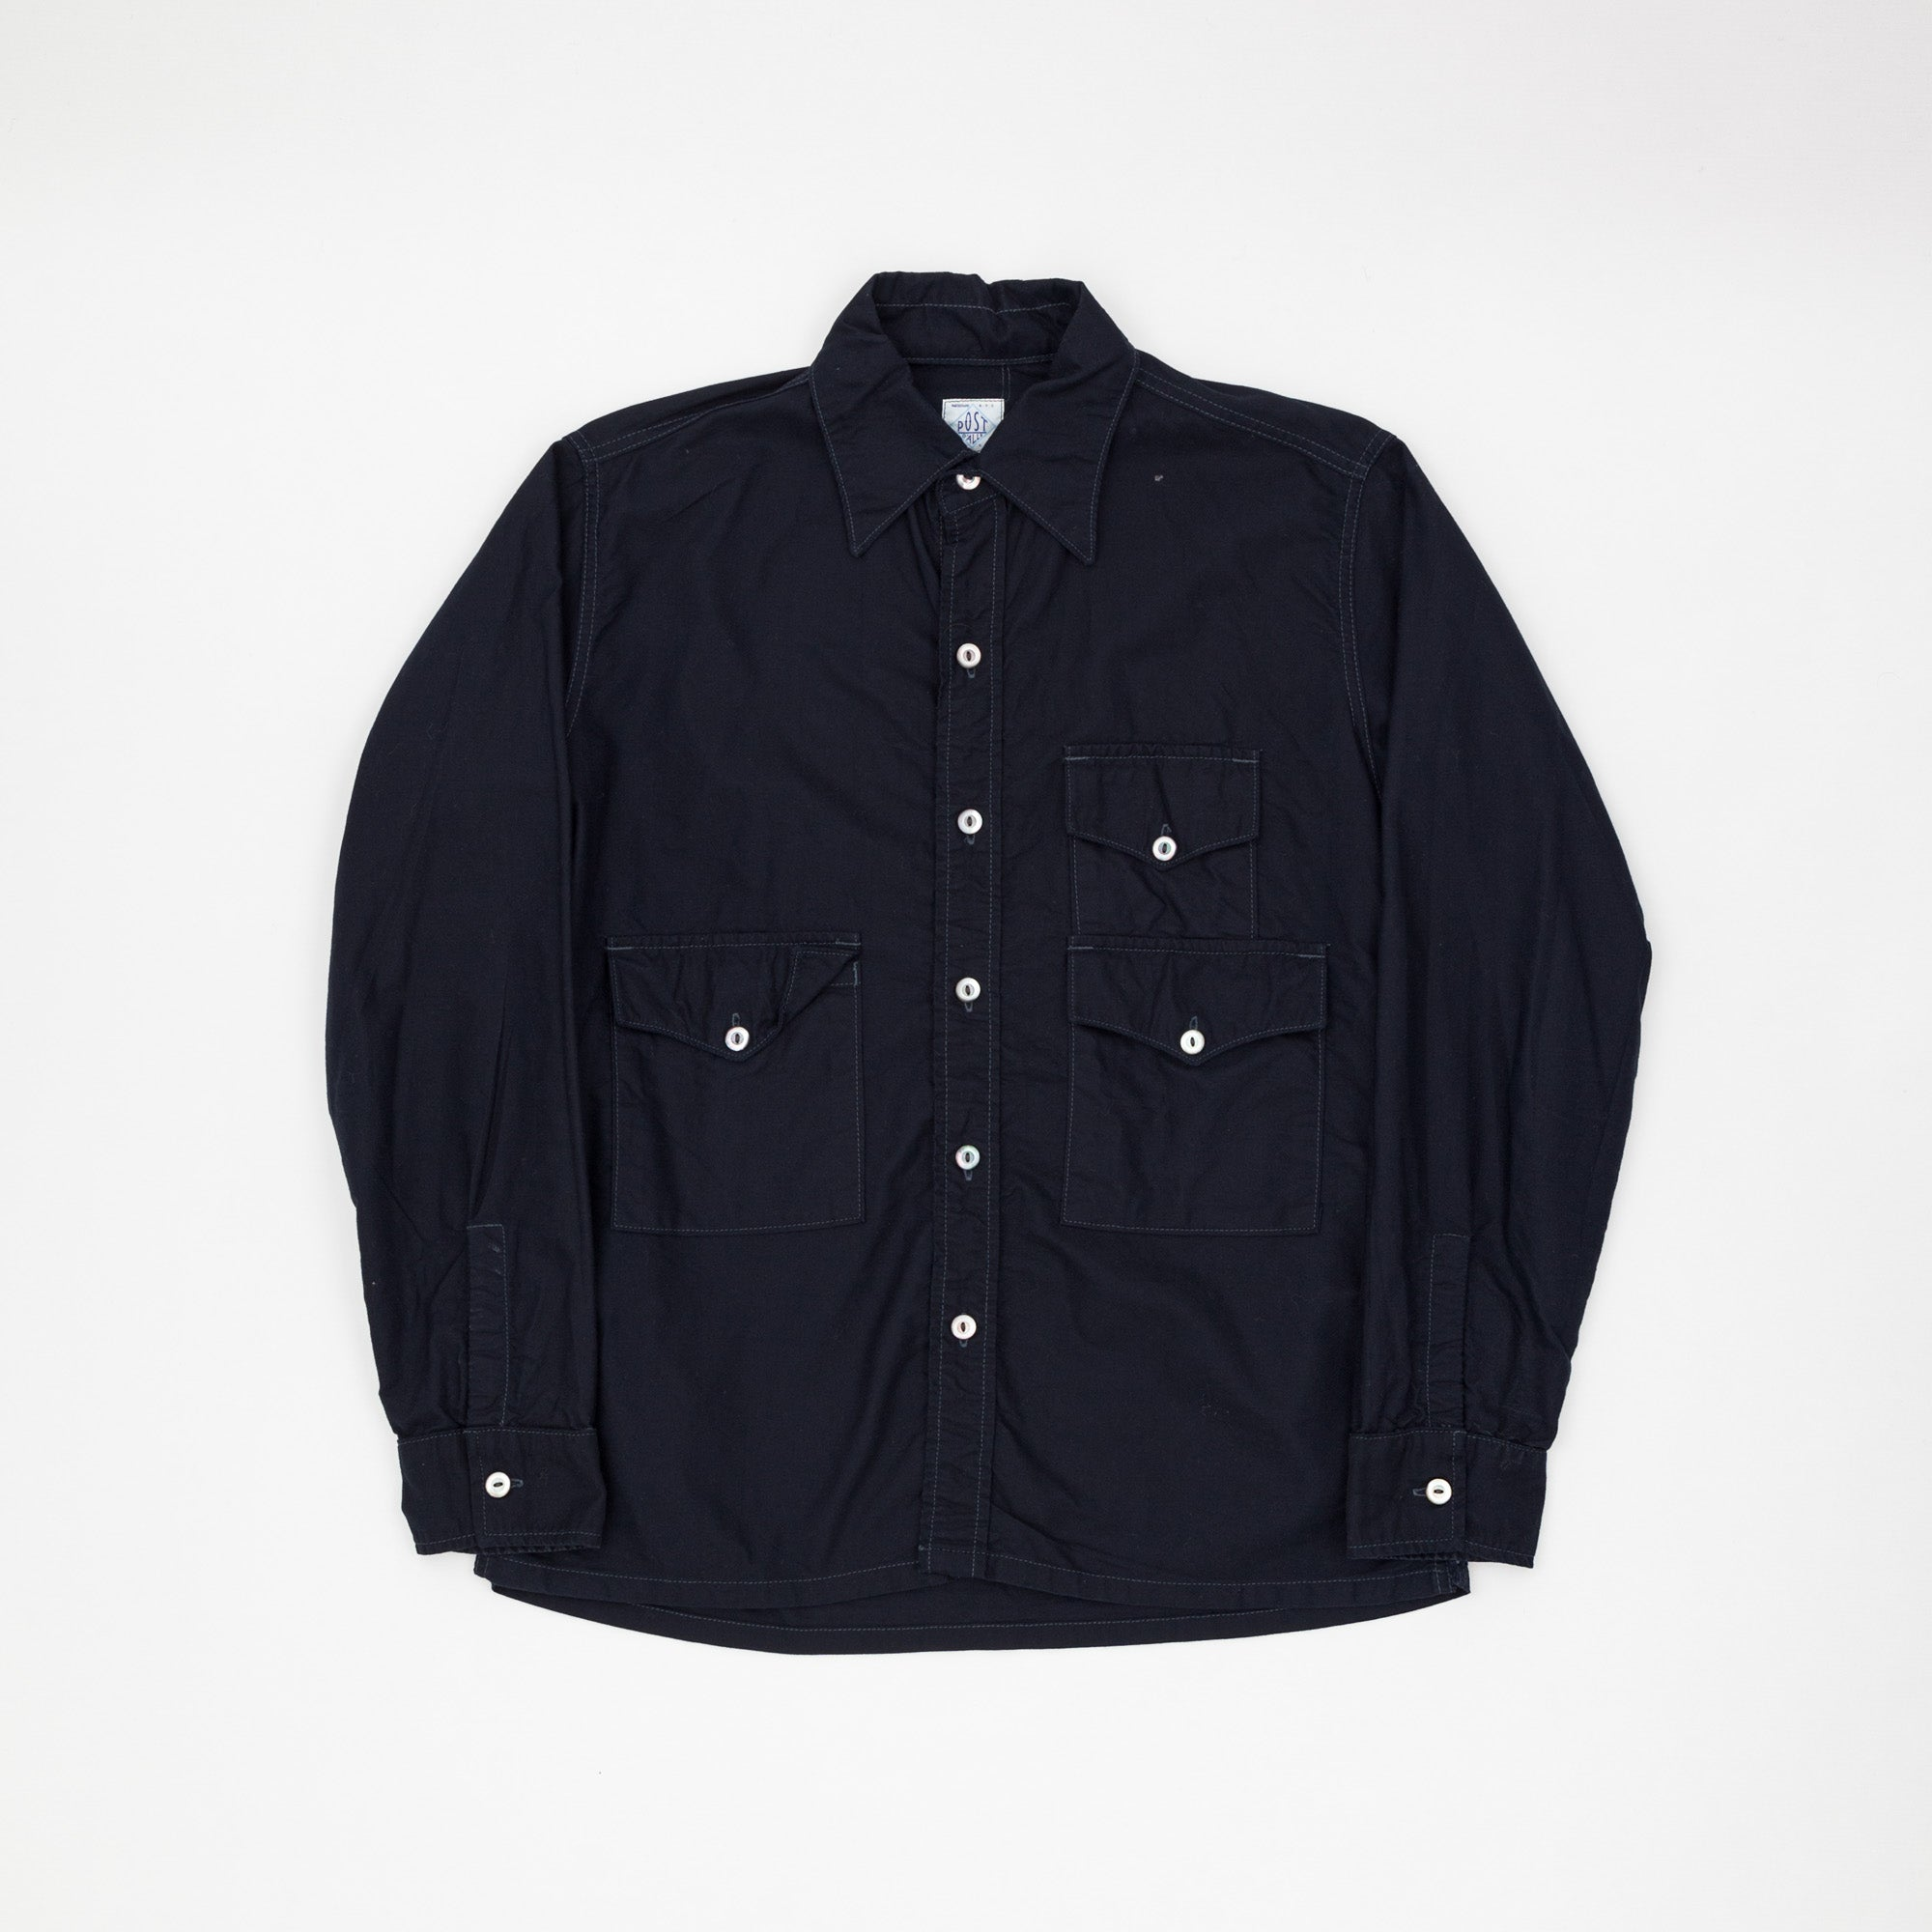 Post Overalls Cotton Utility Shirt